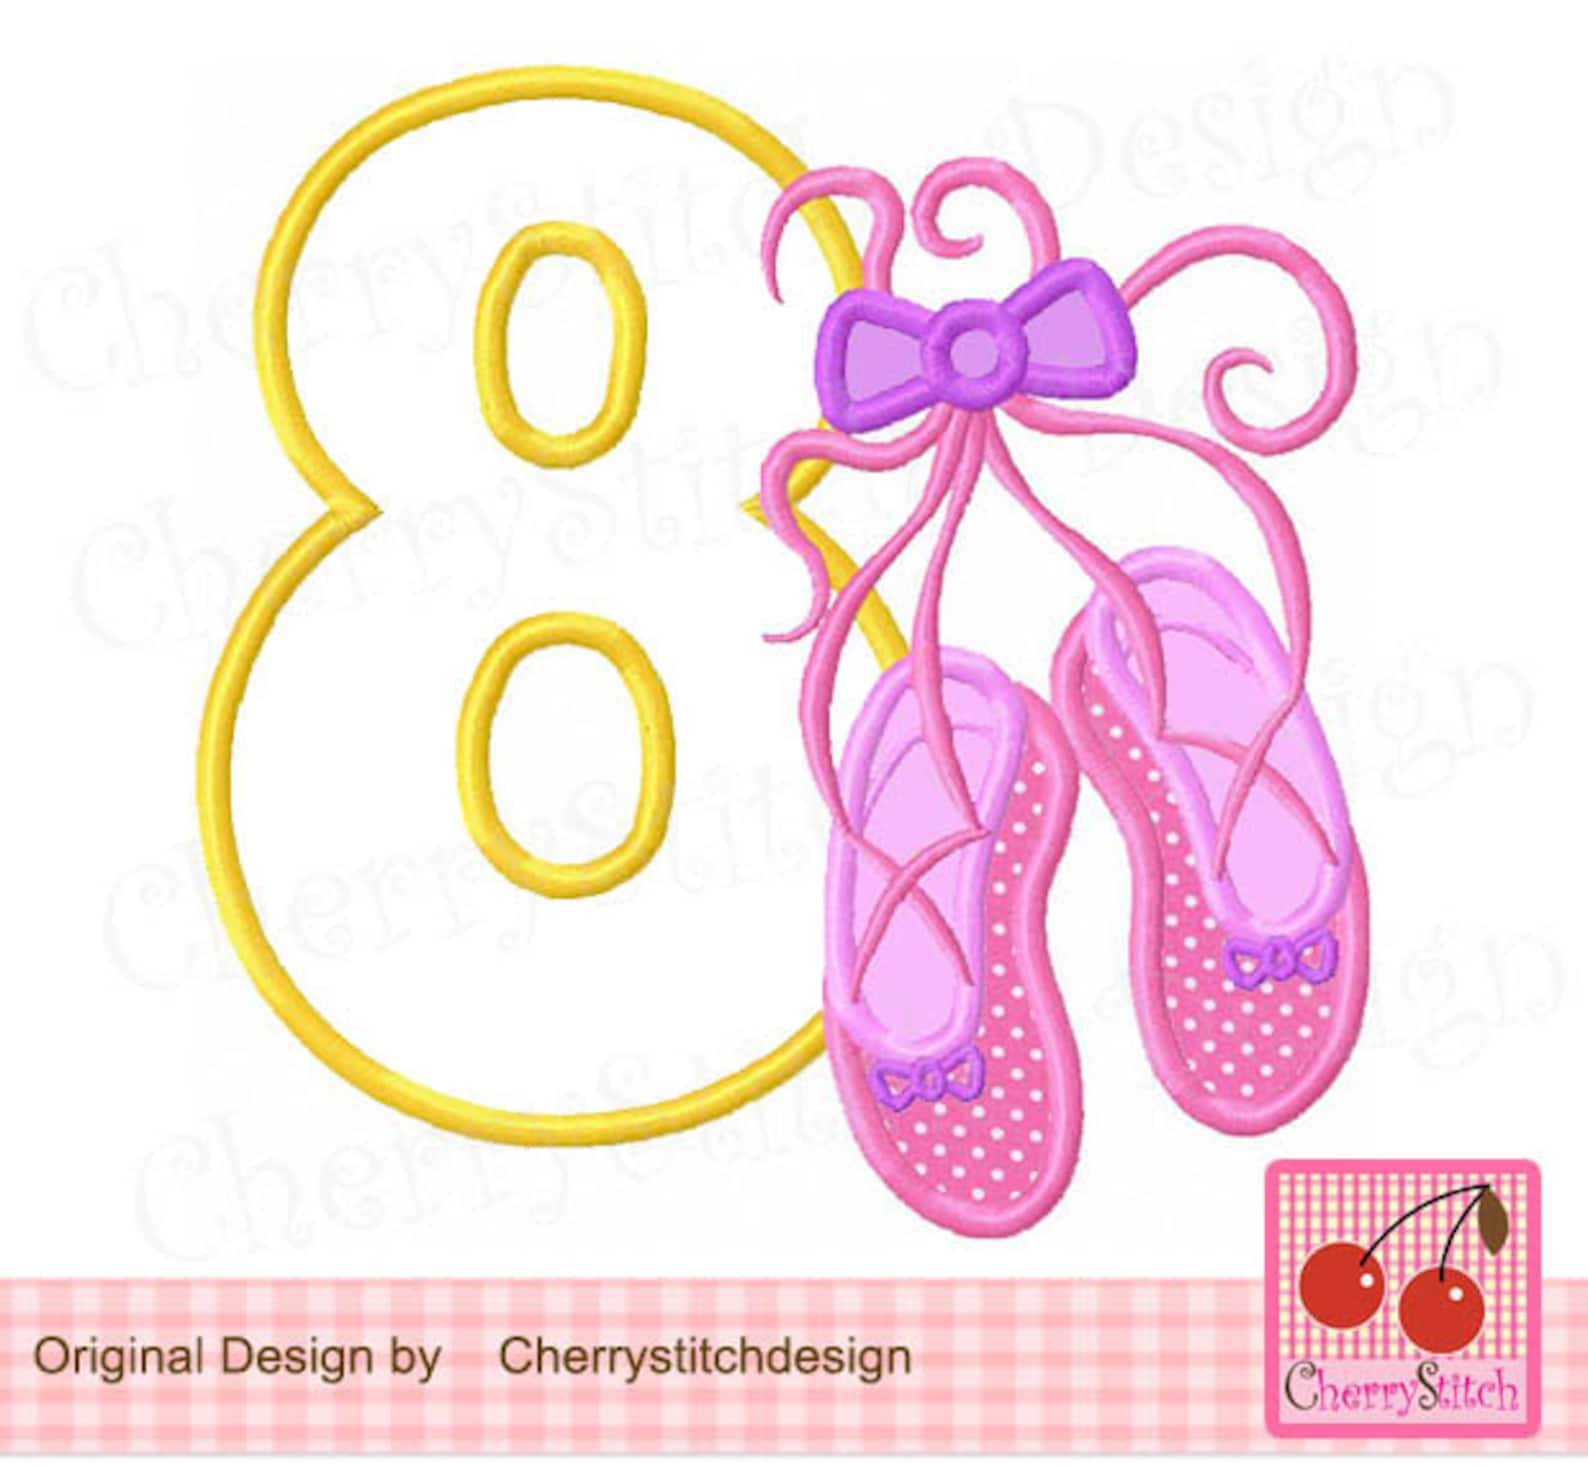 ballet shoes number 8,ballet shoes embroidery design,my 8th birthday digital applique-4x4,5x5,6x6 inch -machine embroidery appli